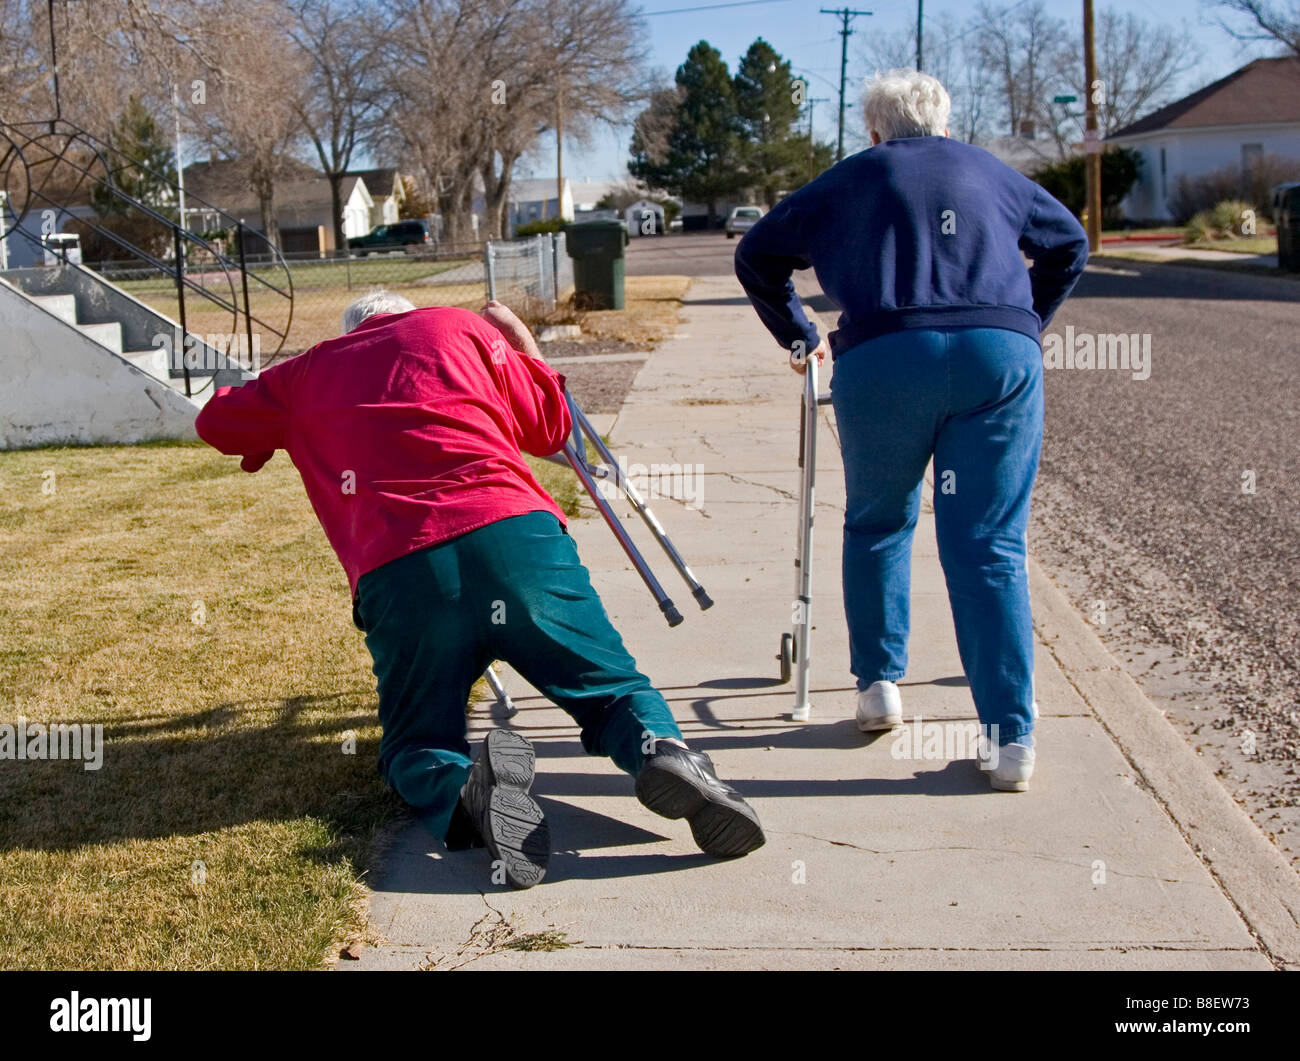 Two elderly senior citizens walk away using walkers, the woman tripped the man who is falling down, funny,  1 of Stock Photo